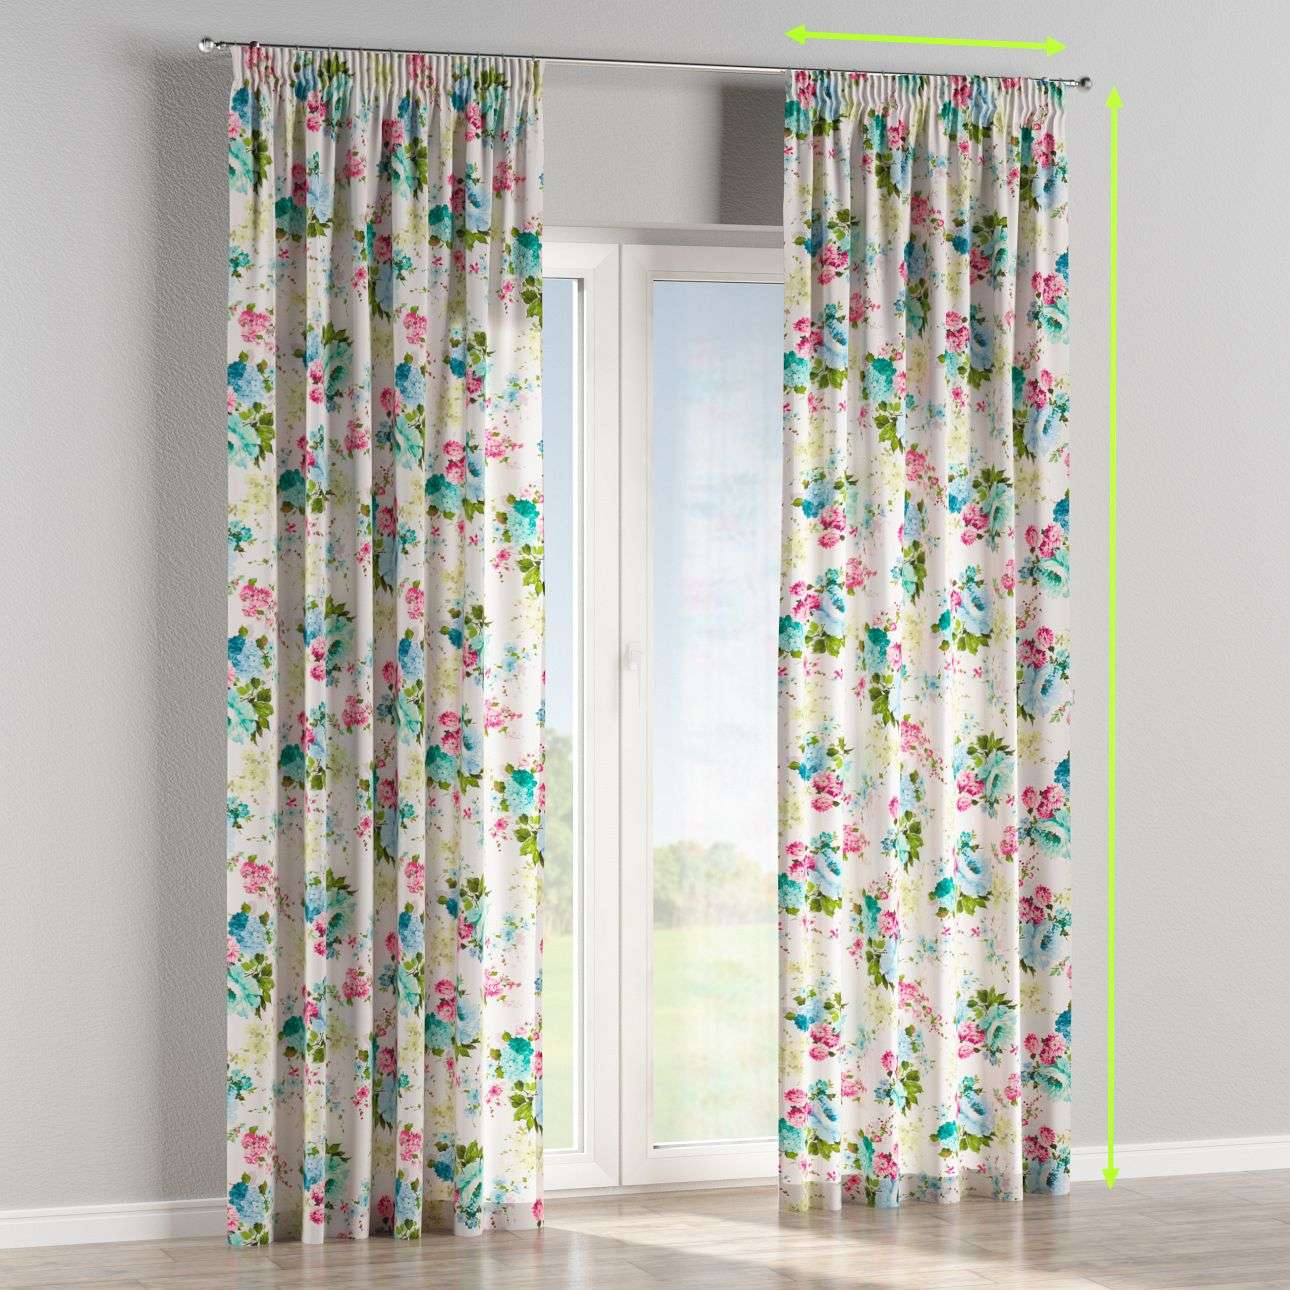 Pencil pleat curtains in collection Monet, fabric: 140-02